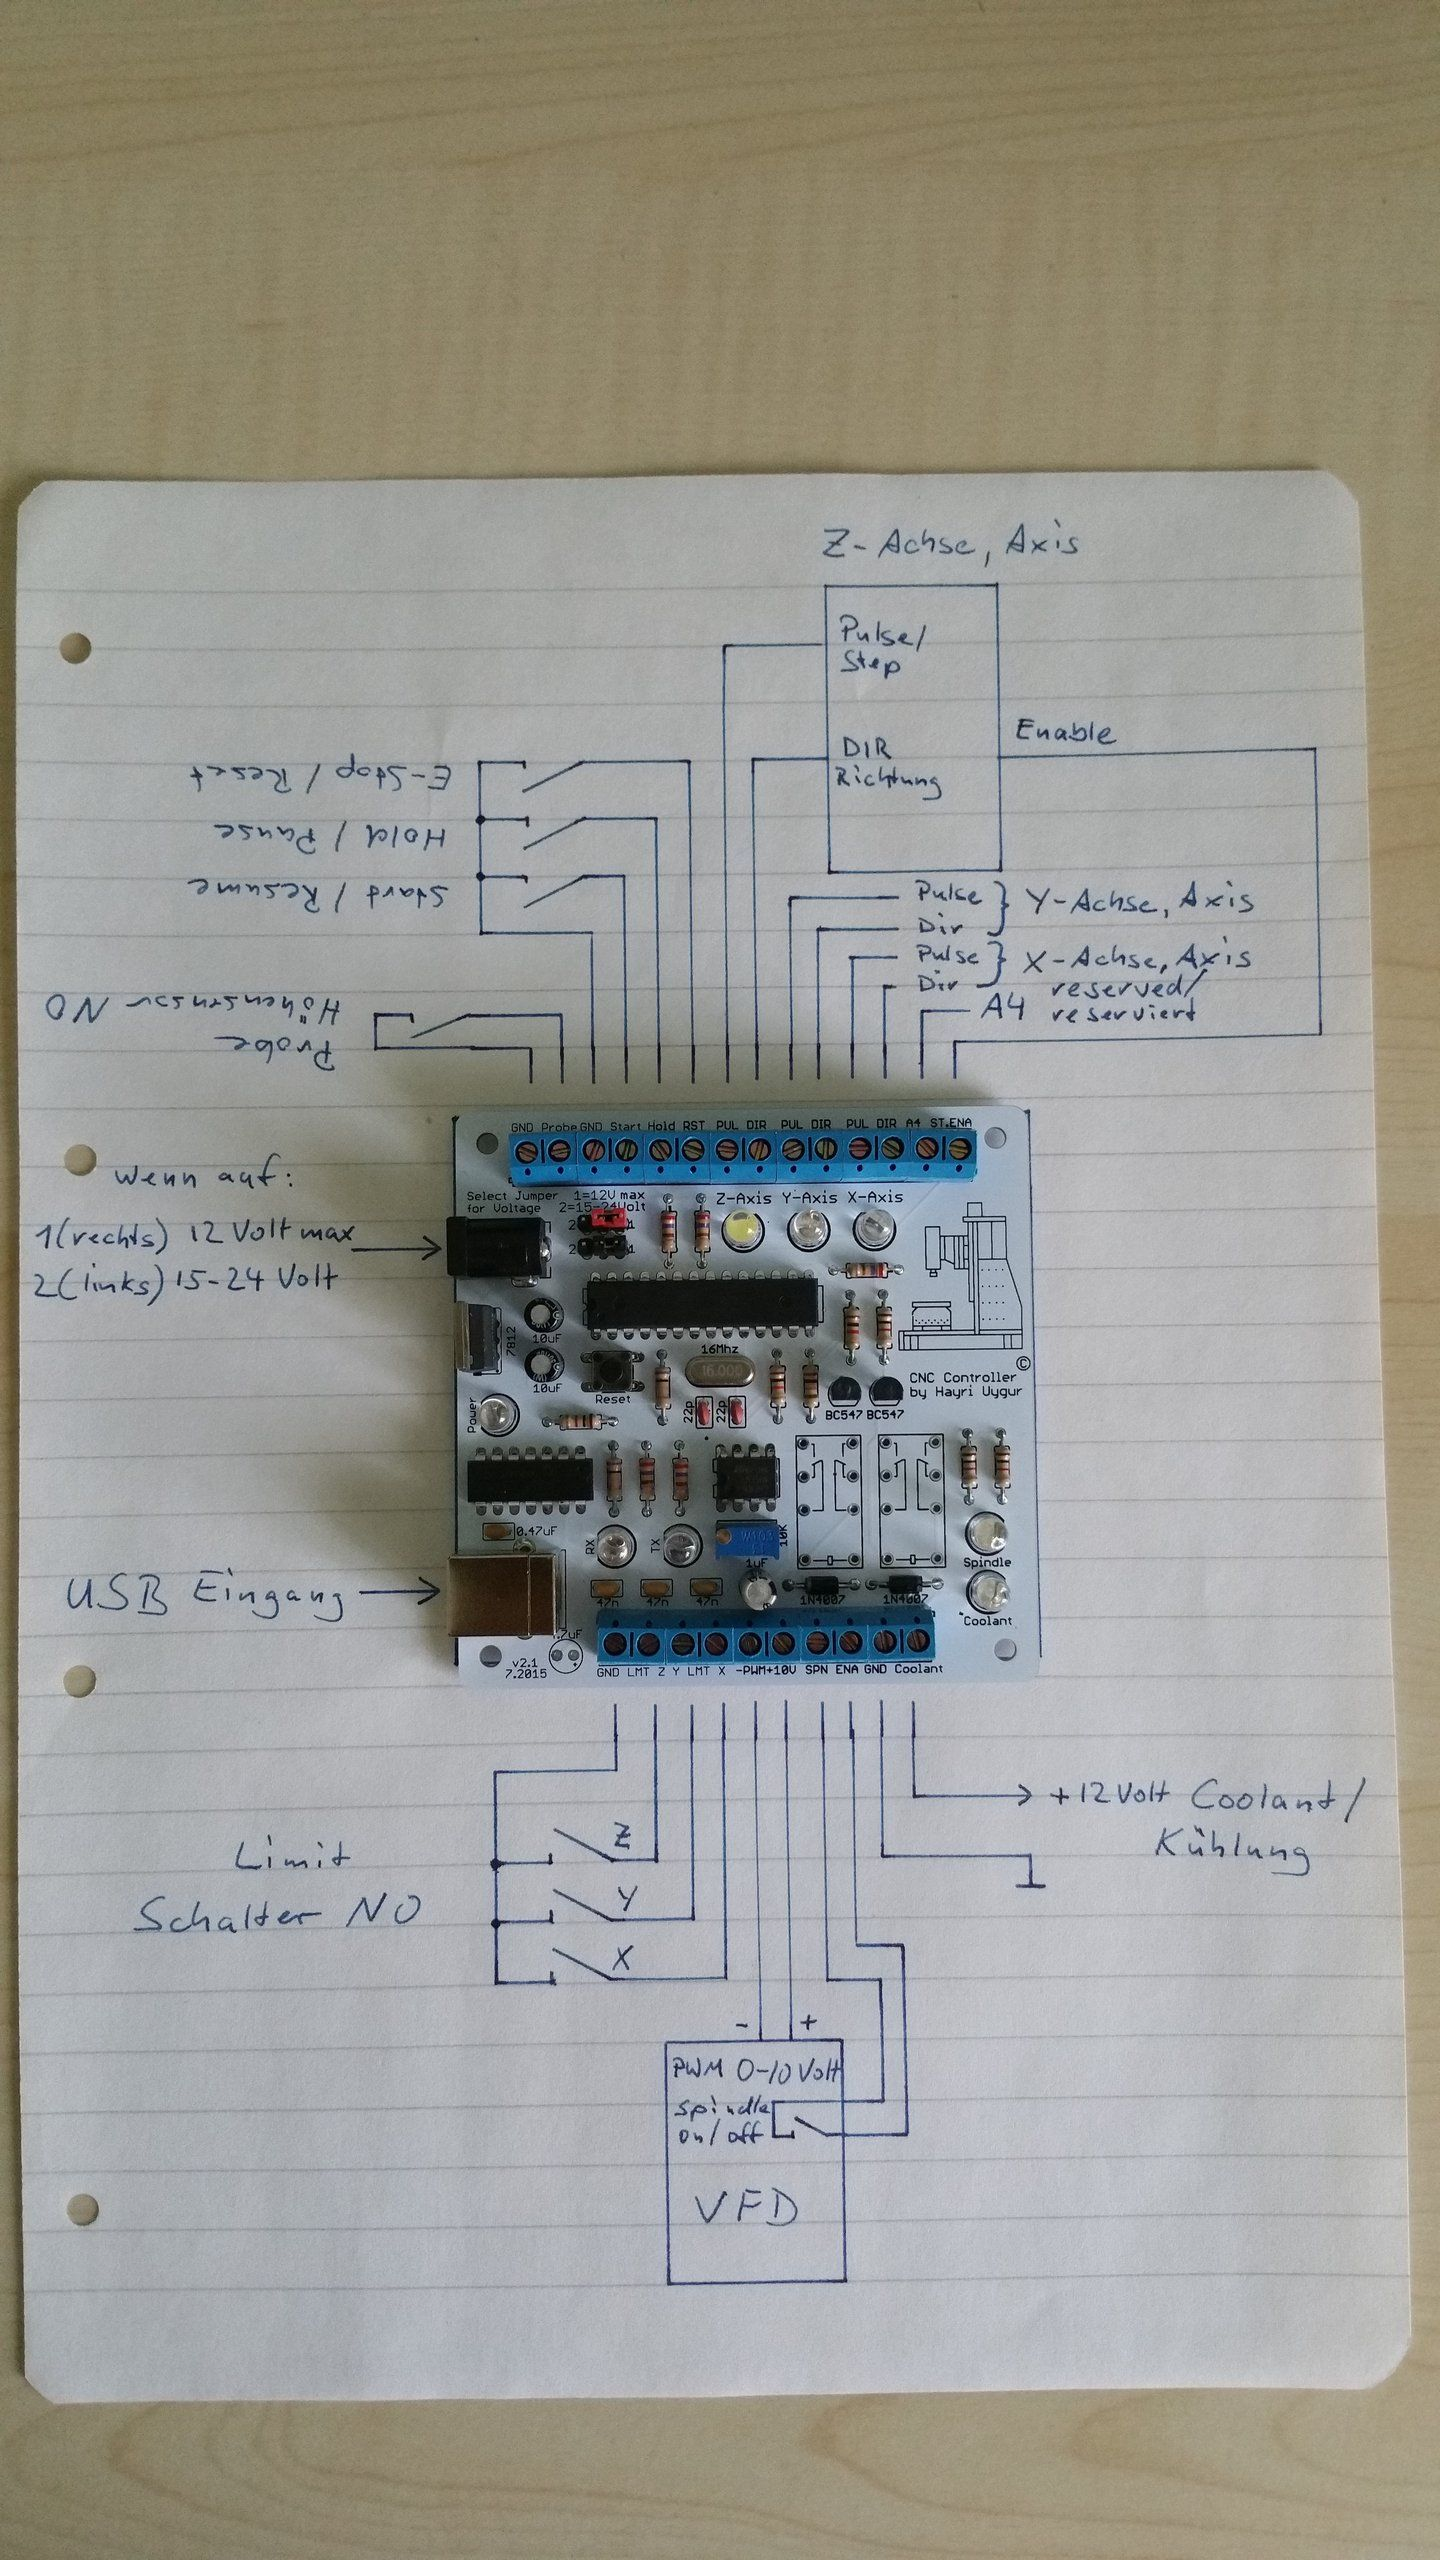 small resolution of phoenix usb cnc controller with pwm output